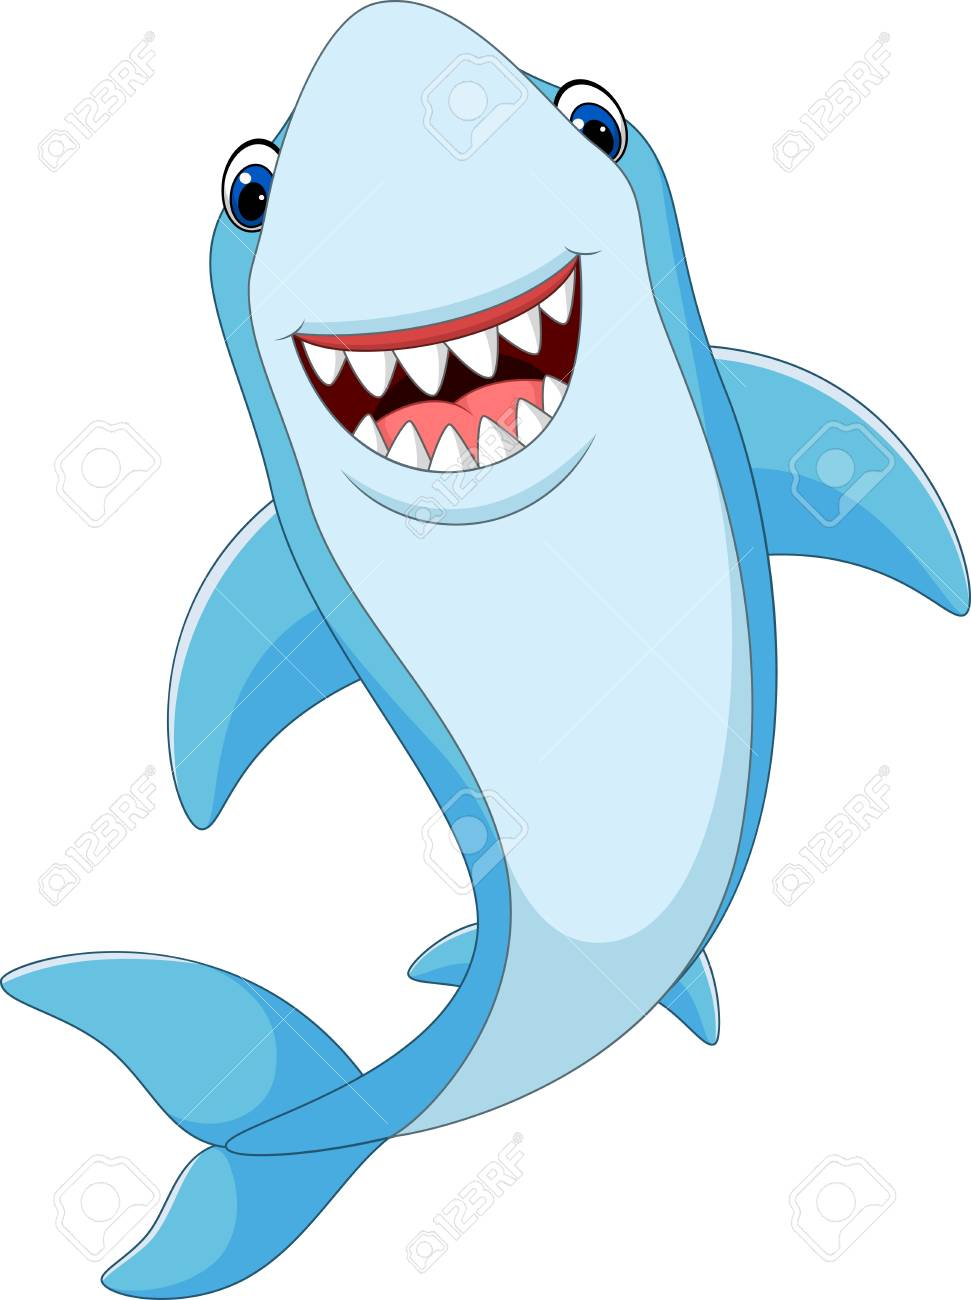 Vector - Vector illustration of Cartoon funny shark isolated on white background